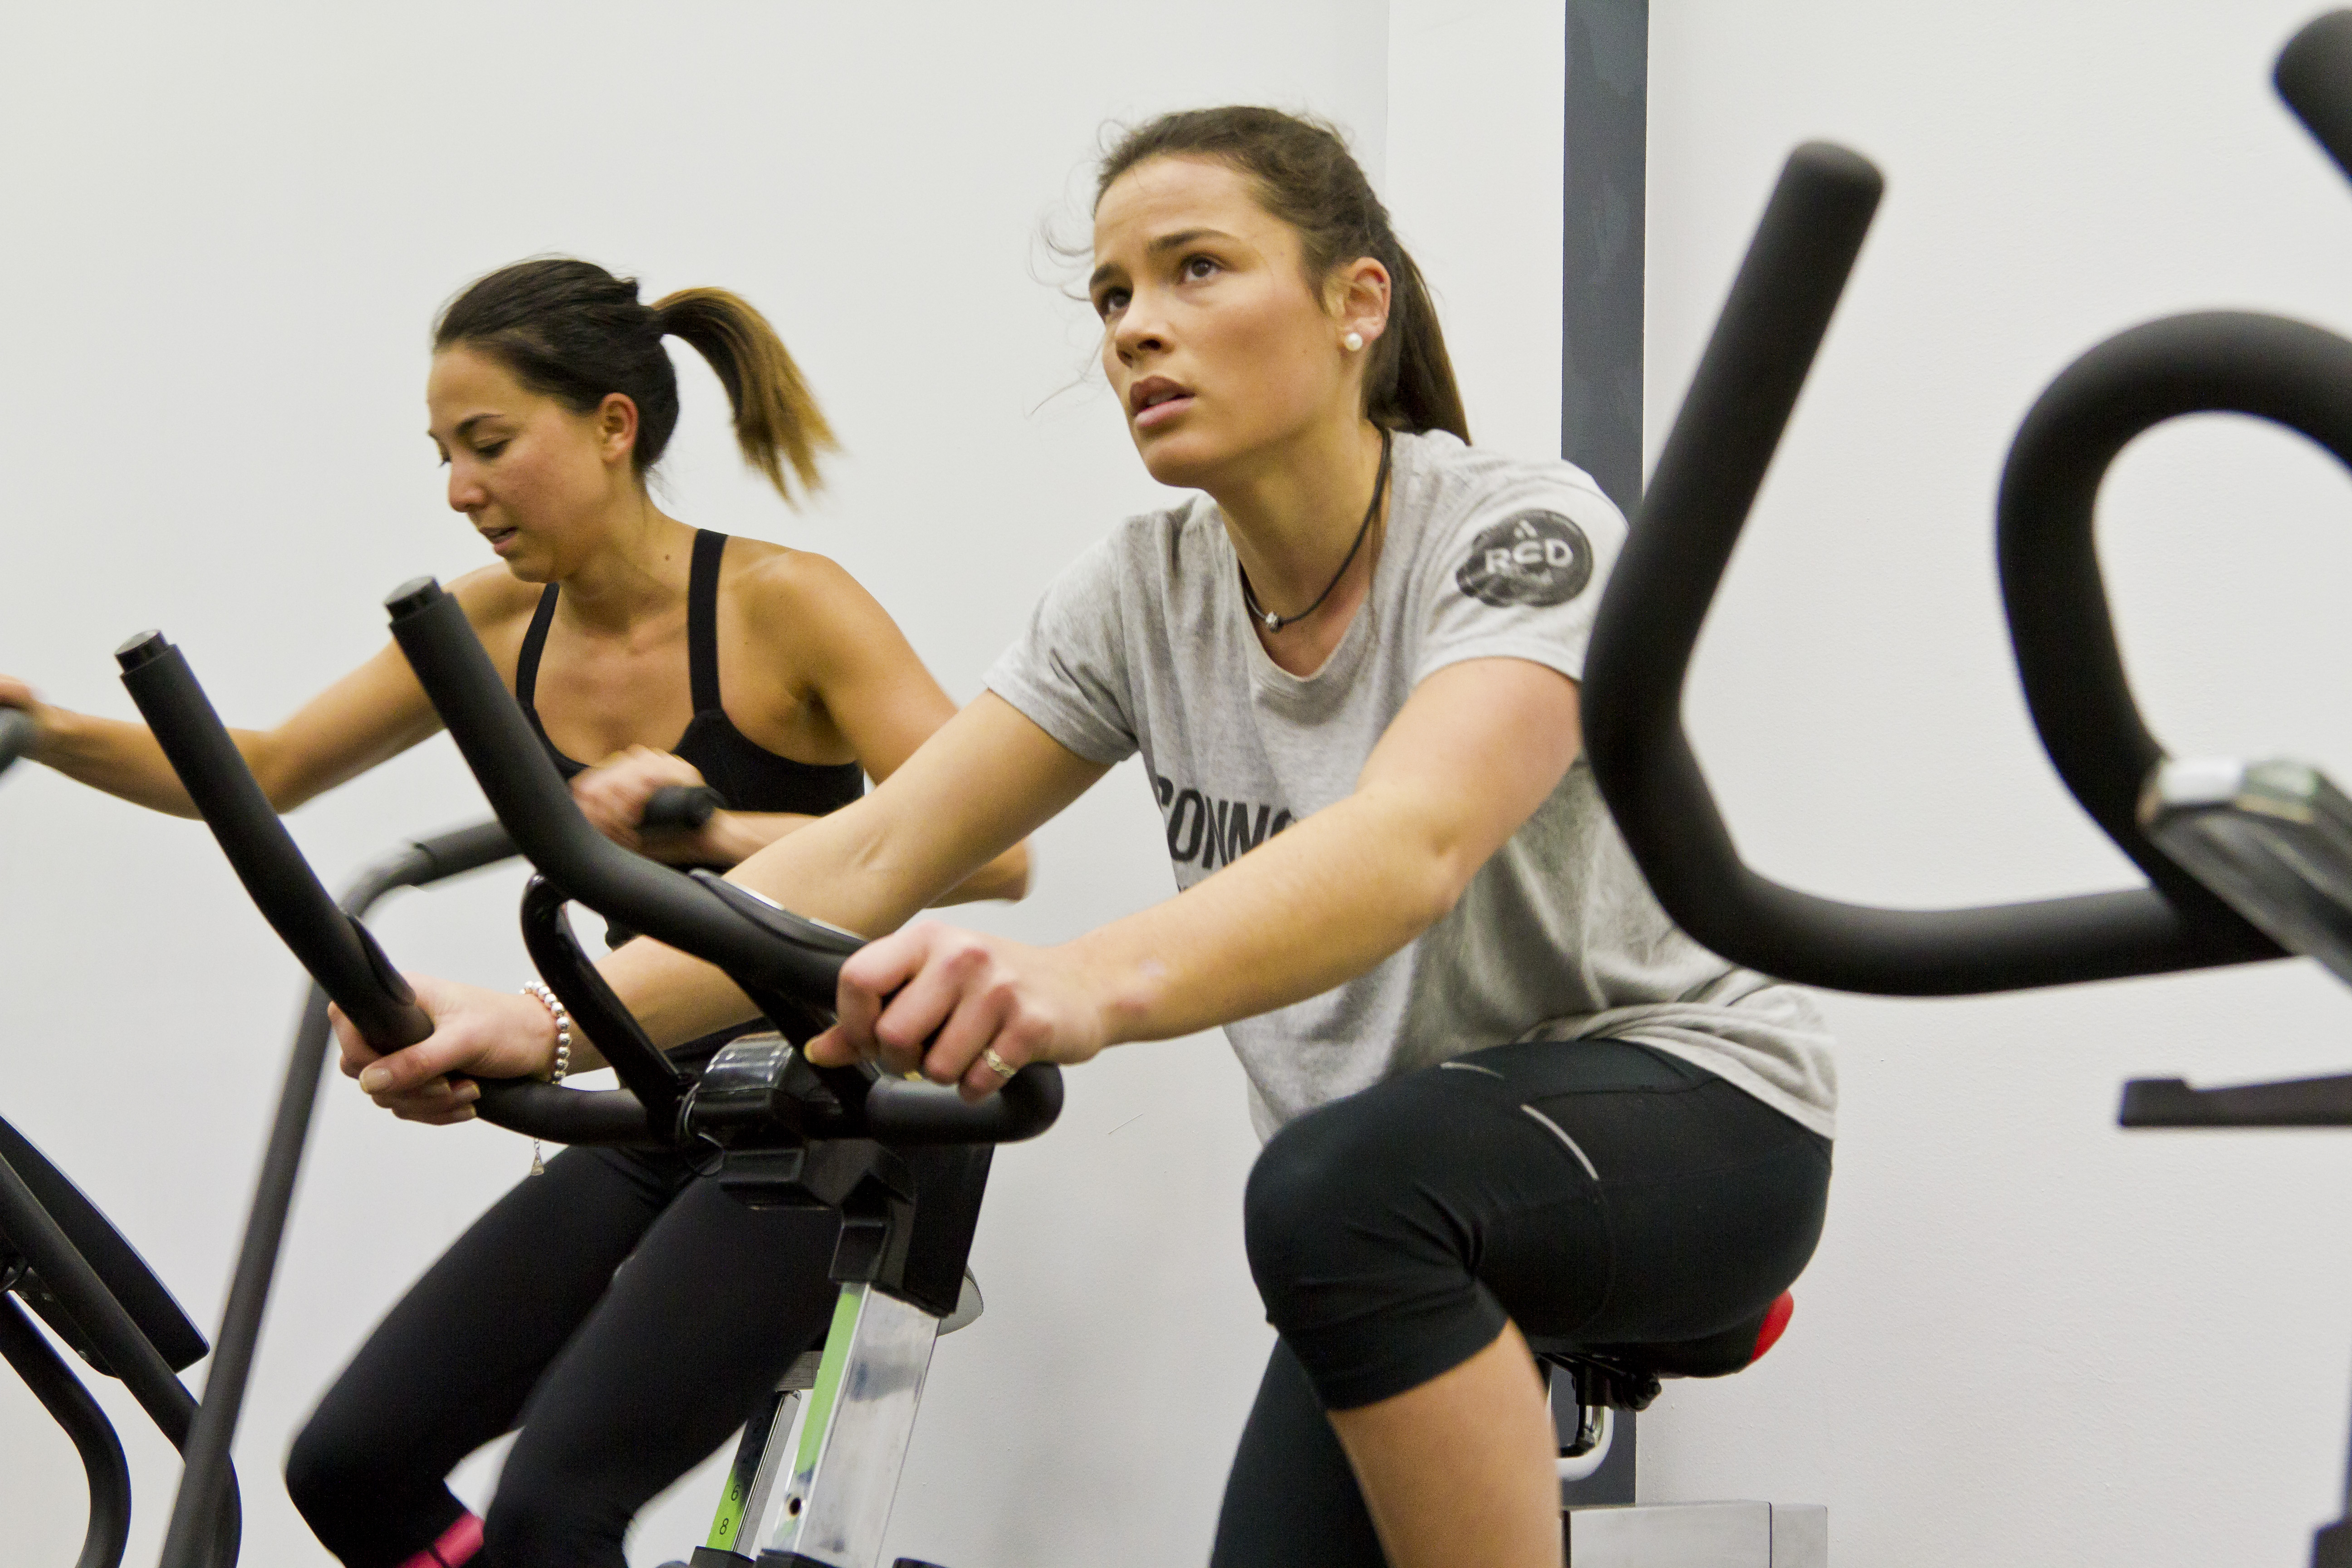 Trifusion fitness two ladies, one on cycle machine and one on stepper